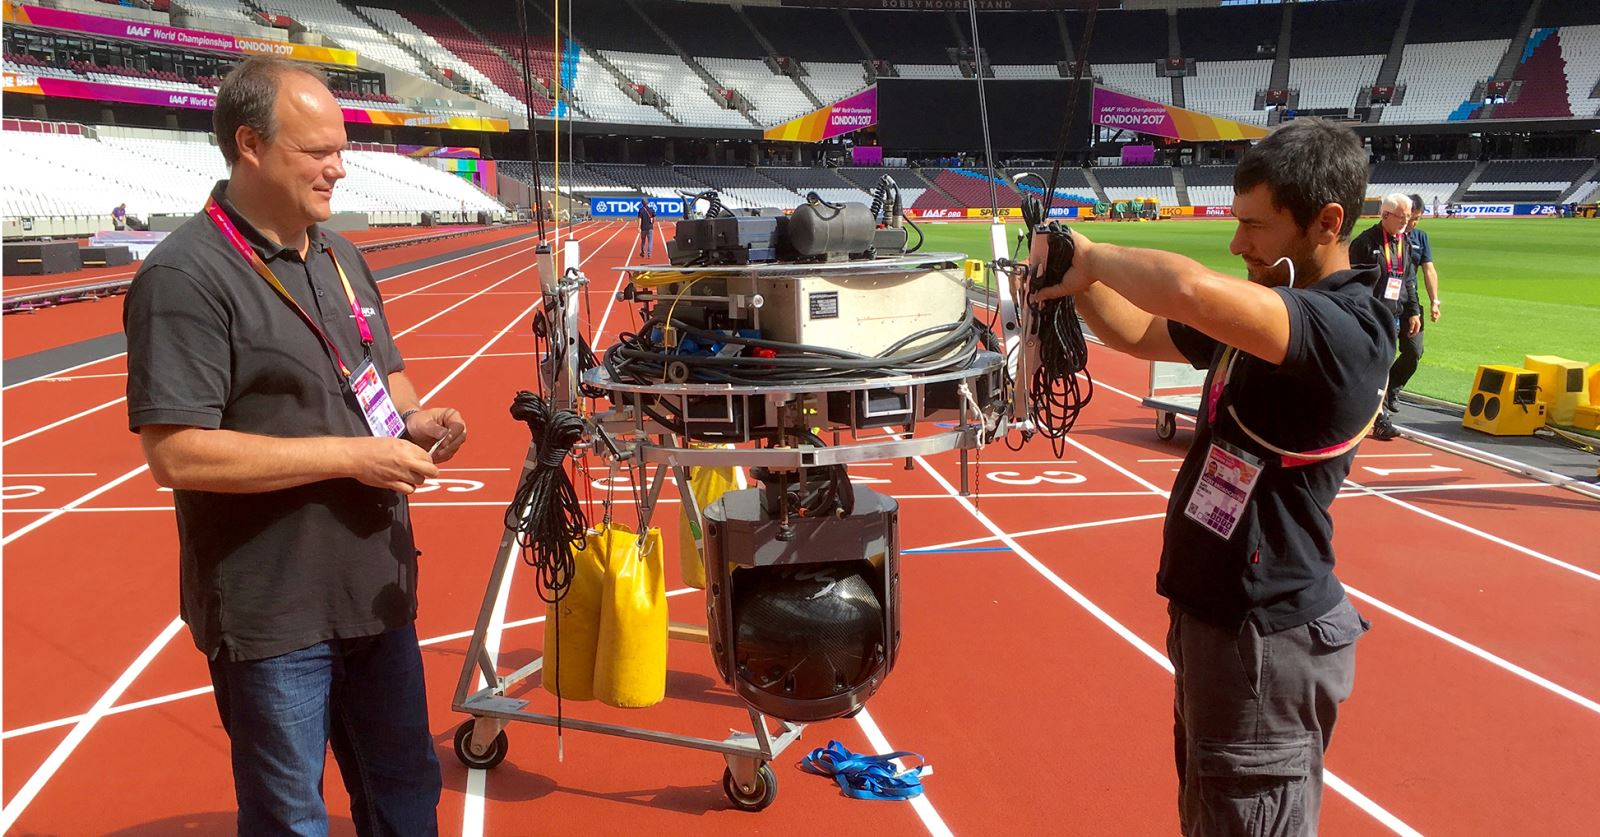 GTC sponsor ACS preparing a 'wirecam' mount of the Olympic Stadium finish line ahead of the IAFF World Championships